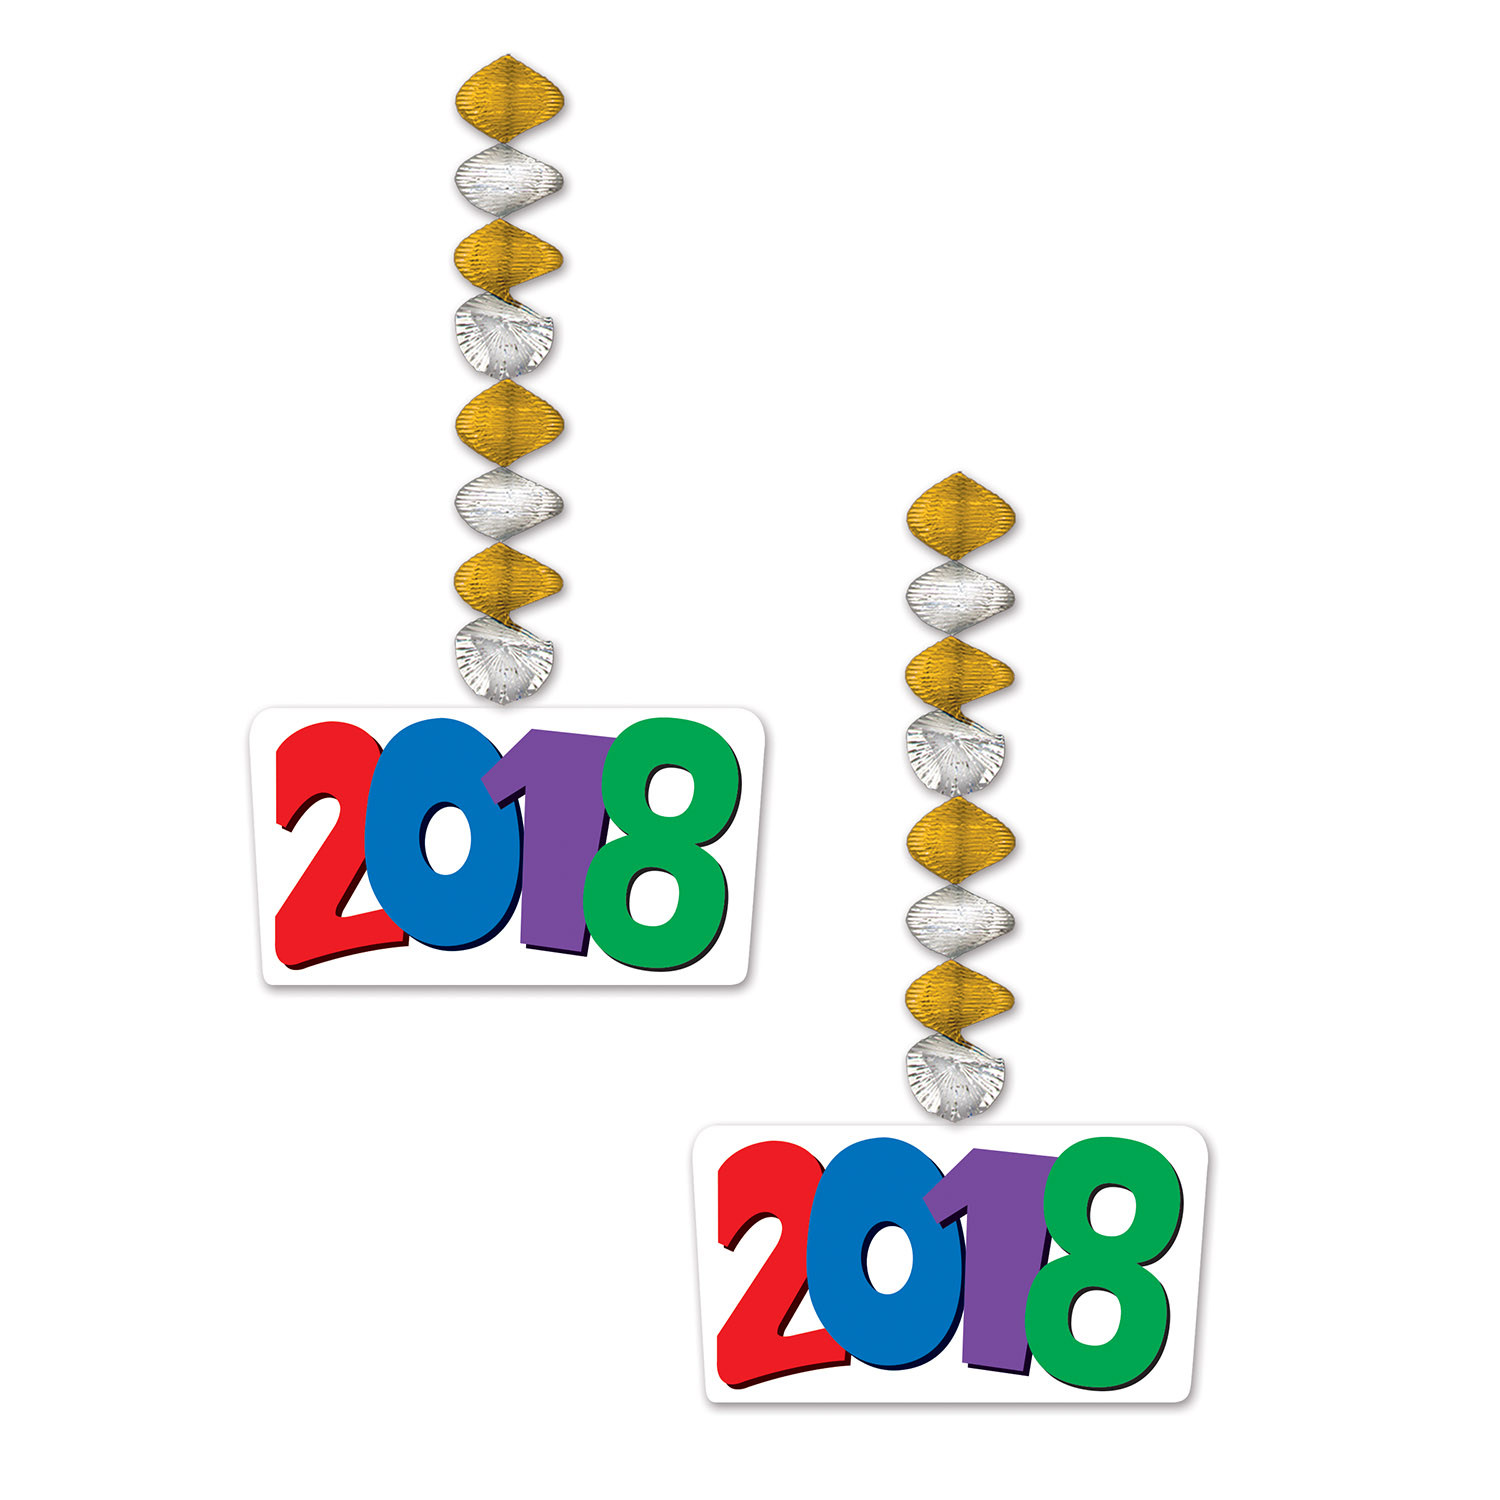 2018  Danglers (Pack of 24) 2018 Danglers, New Years Decor, New Years Ideas, Wholesale party supplies, Inexpensive party goods, Cheap decorations, Multi Color, Hanging Decorations, Graduation supplies, Danglers